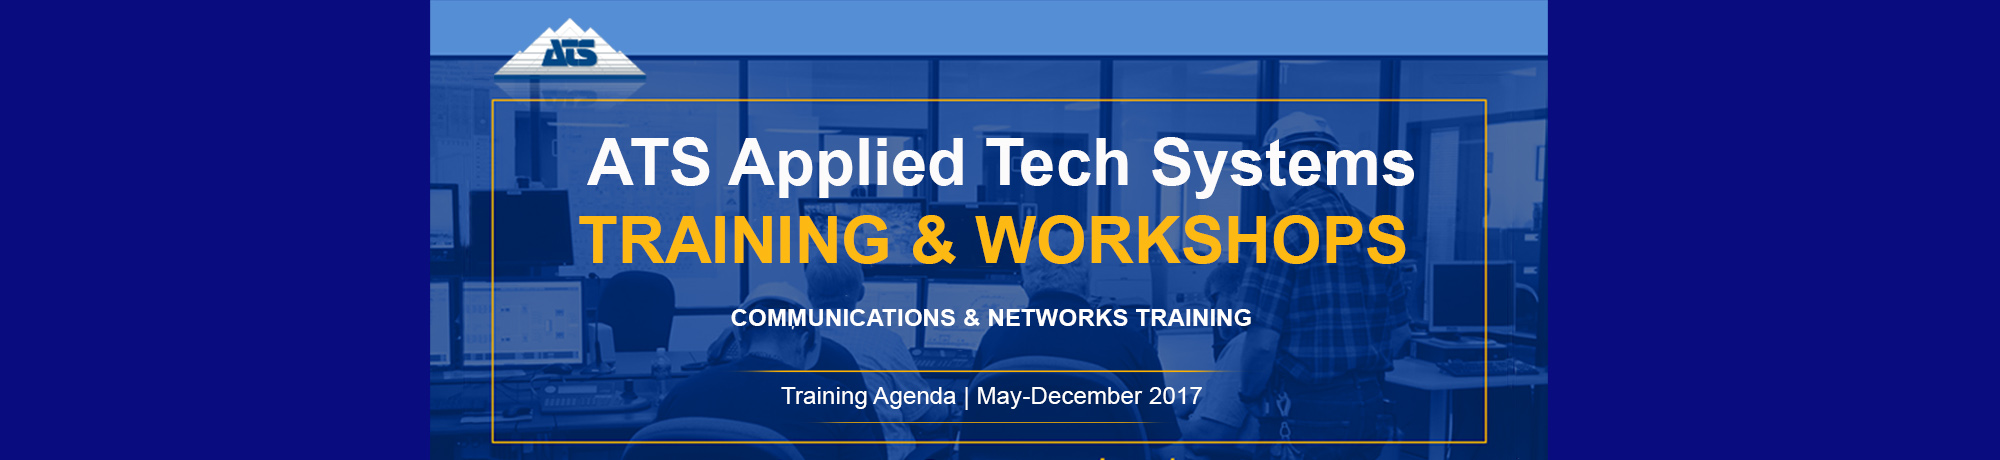 ATS Applied Tech Systems Training - Communications & Networks Training